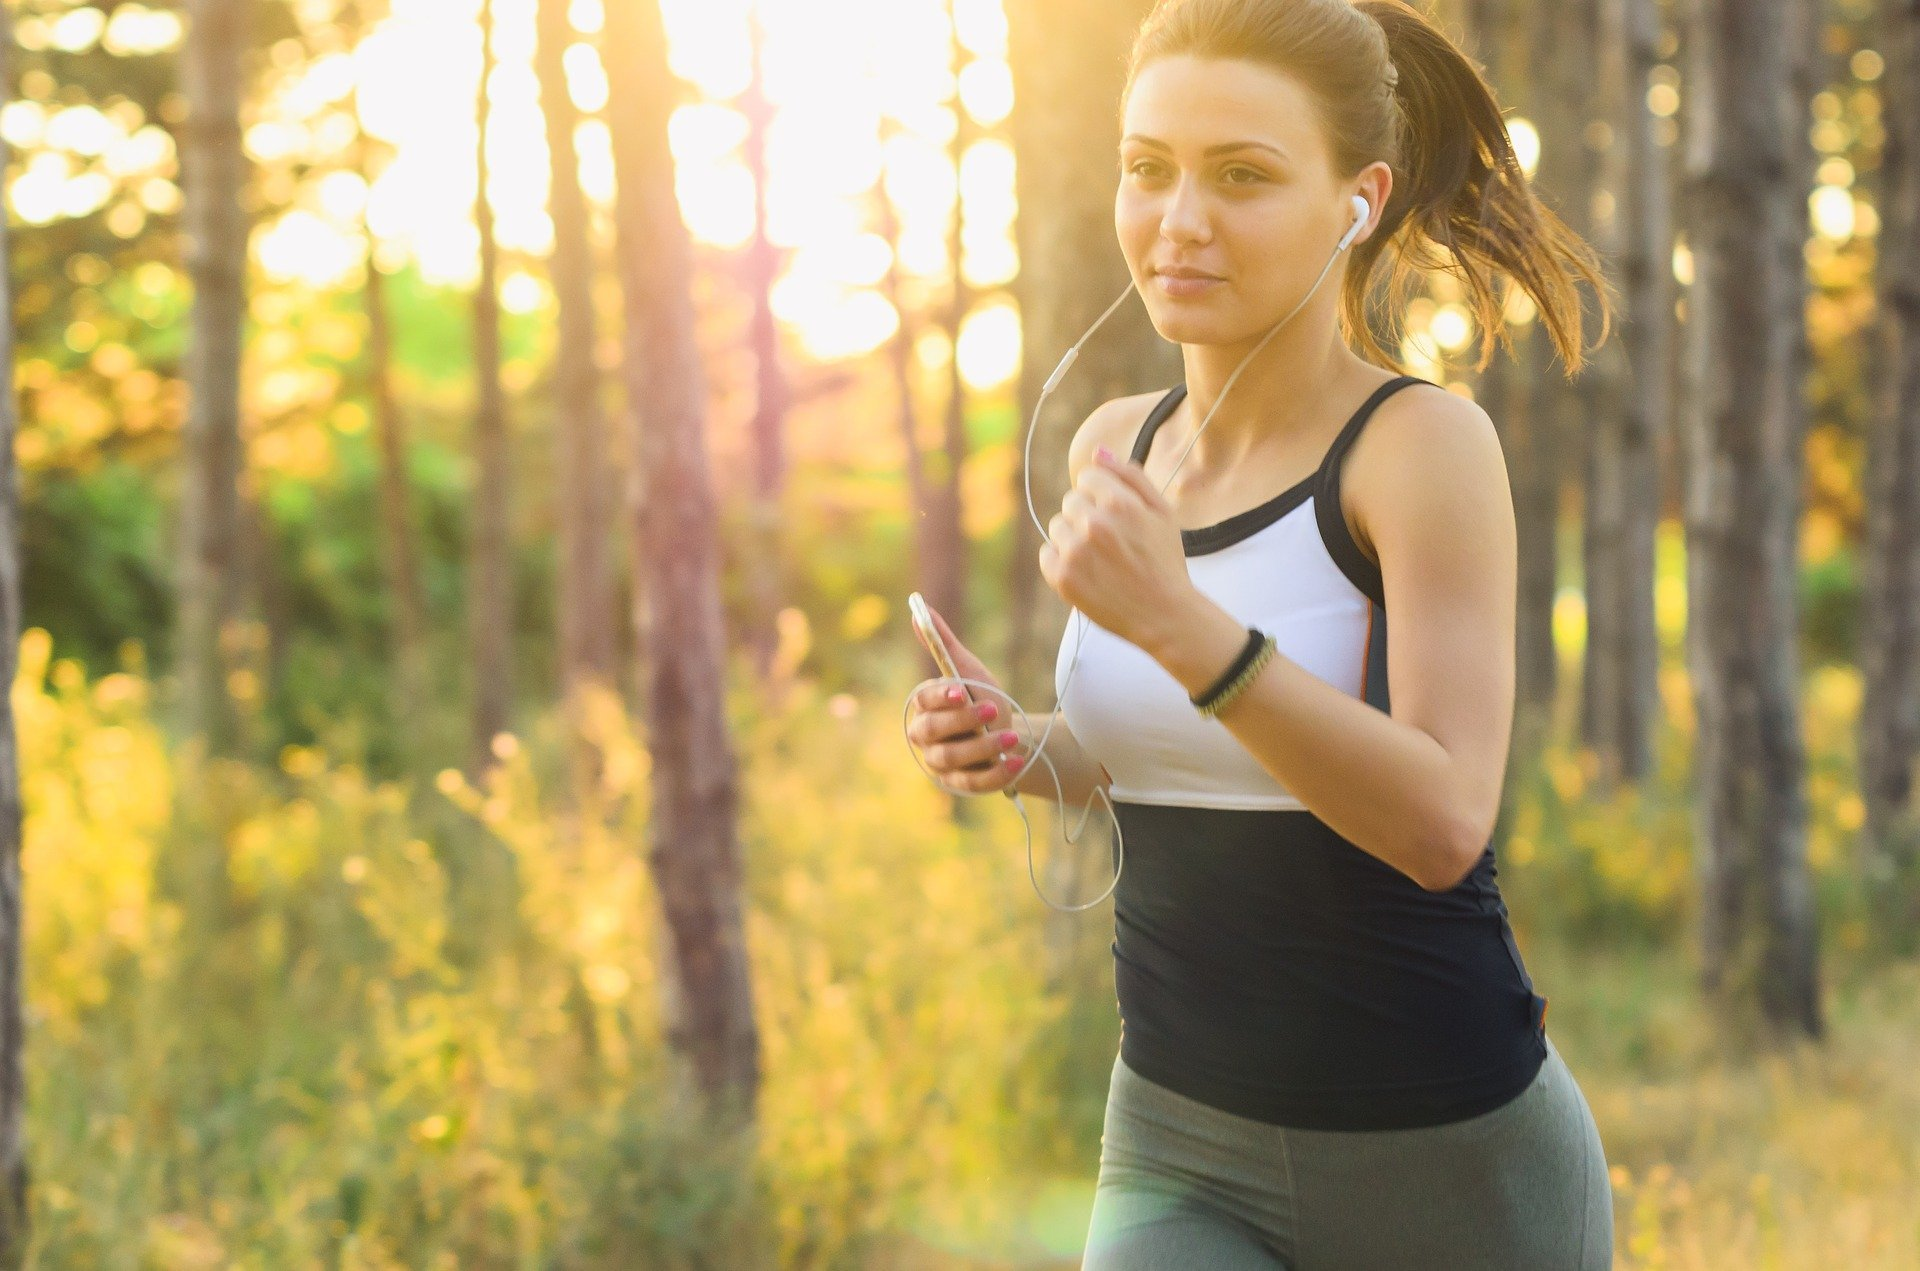 Ways to Stay Cool While Running in the Summer Heat